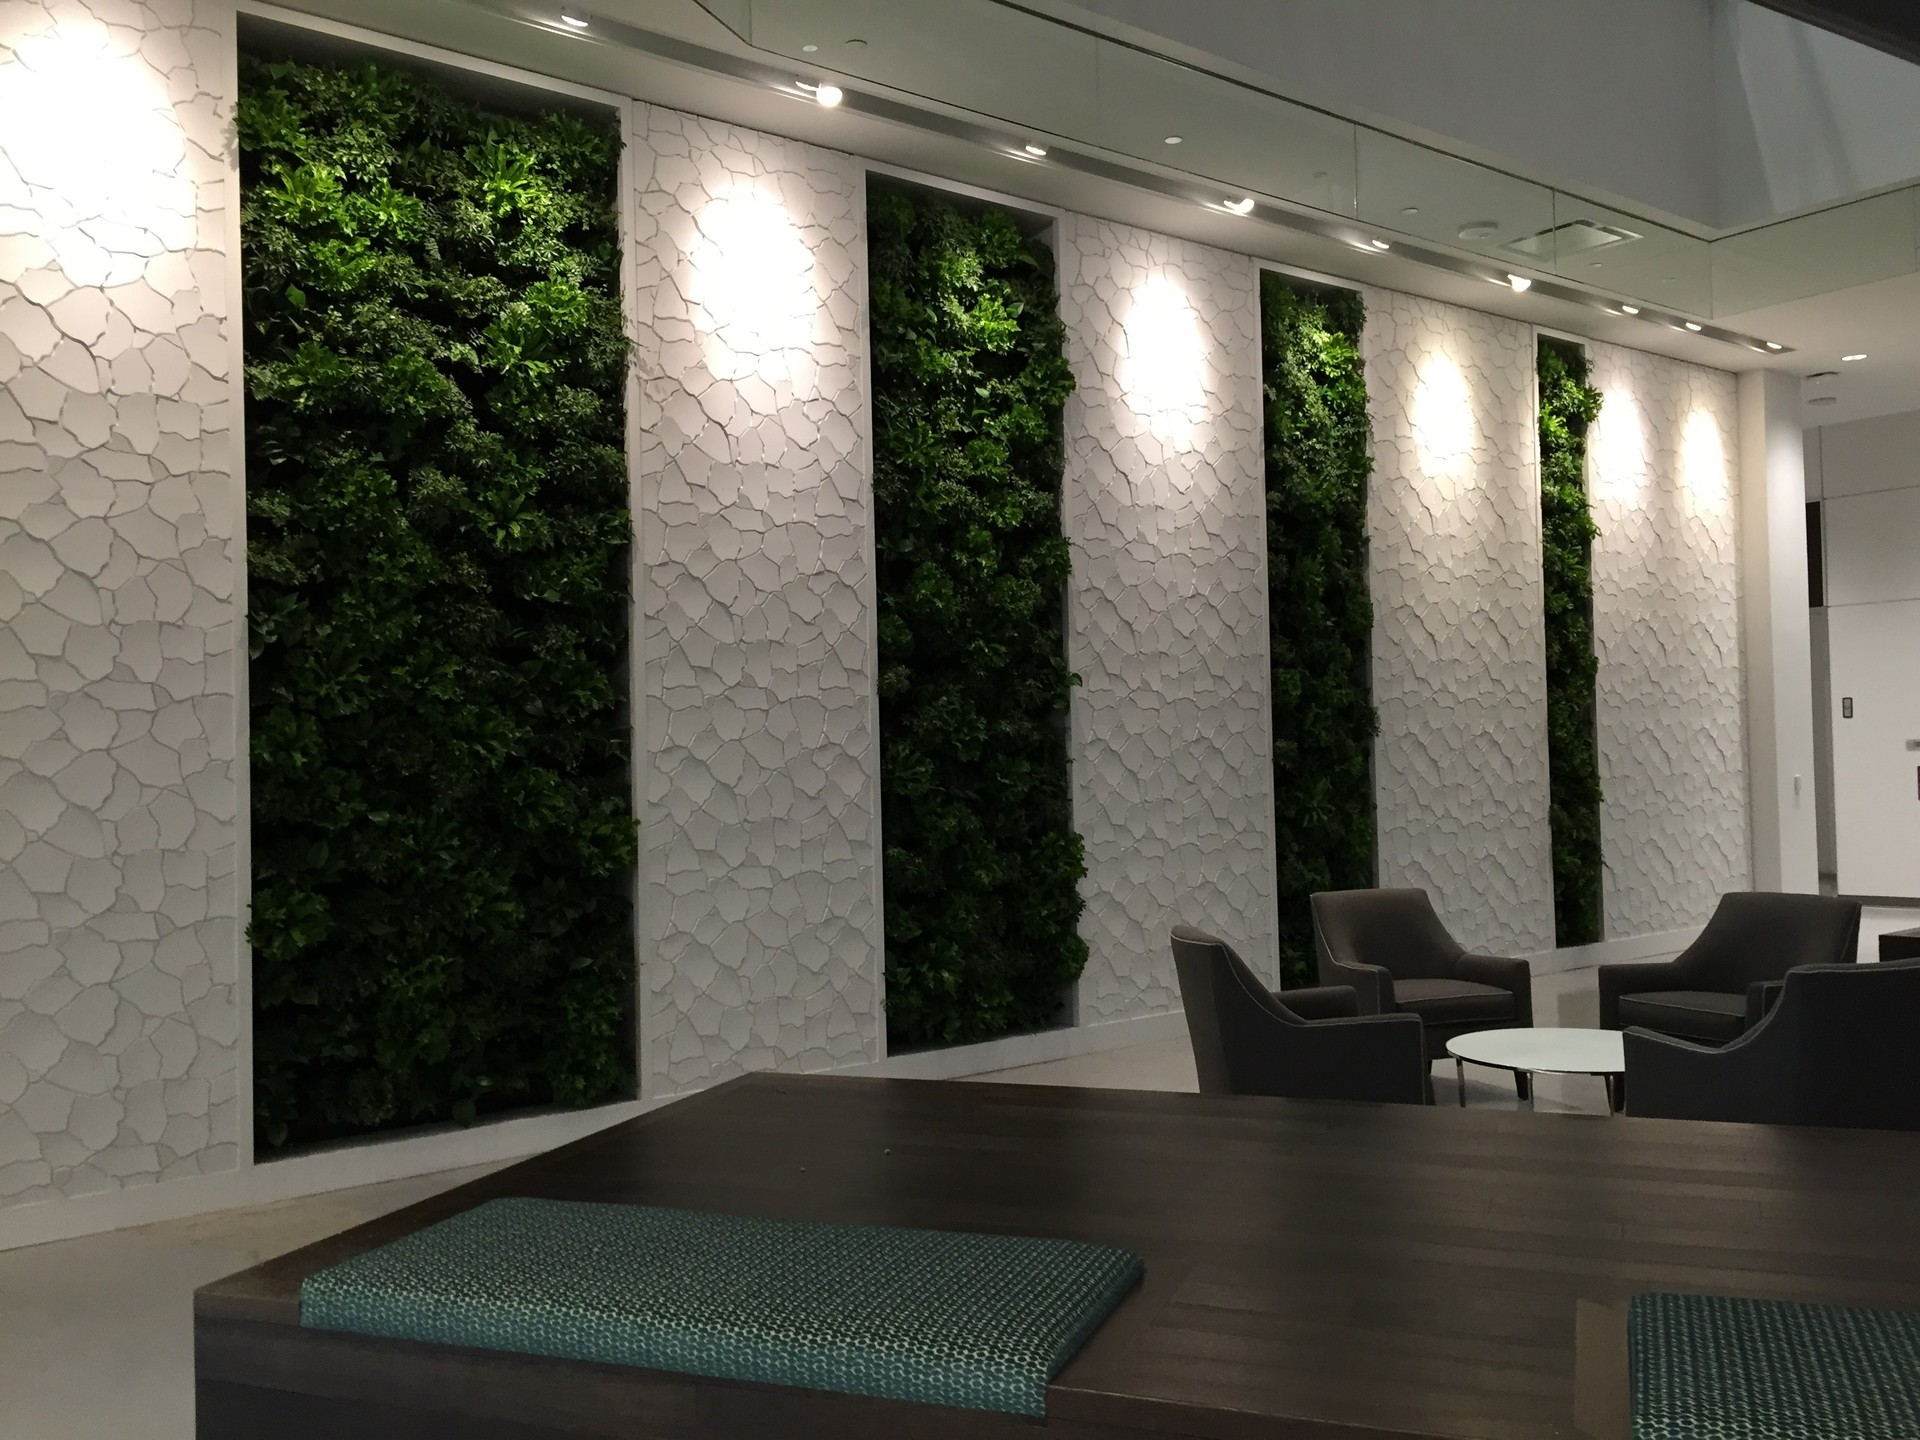 A green wall system, by Natura, not only adds to the aesthetic but is also a healthy option for an office space.